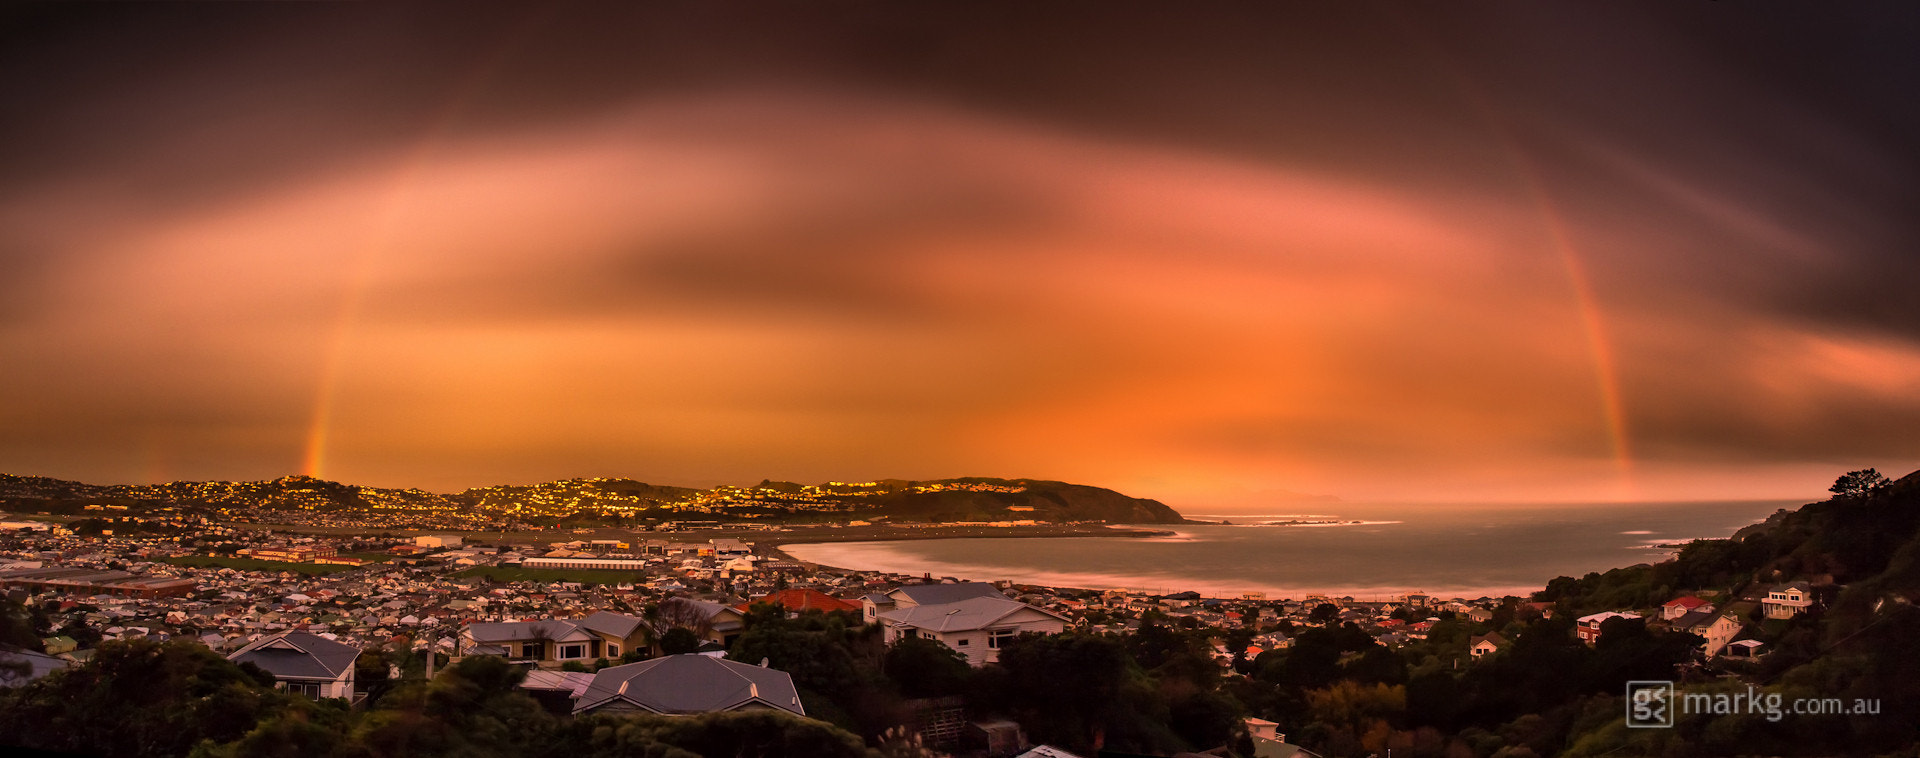 Photograph Golden Hour Rainbow Over Lyall by Mark Gee on 500px